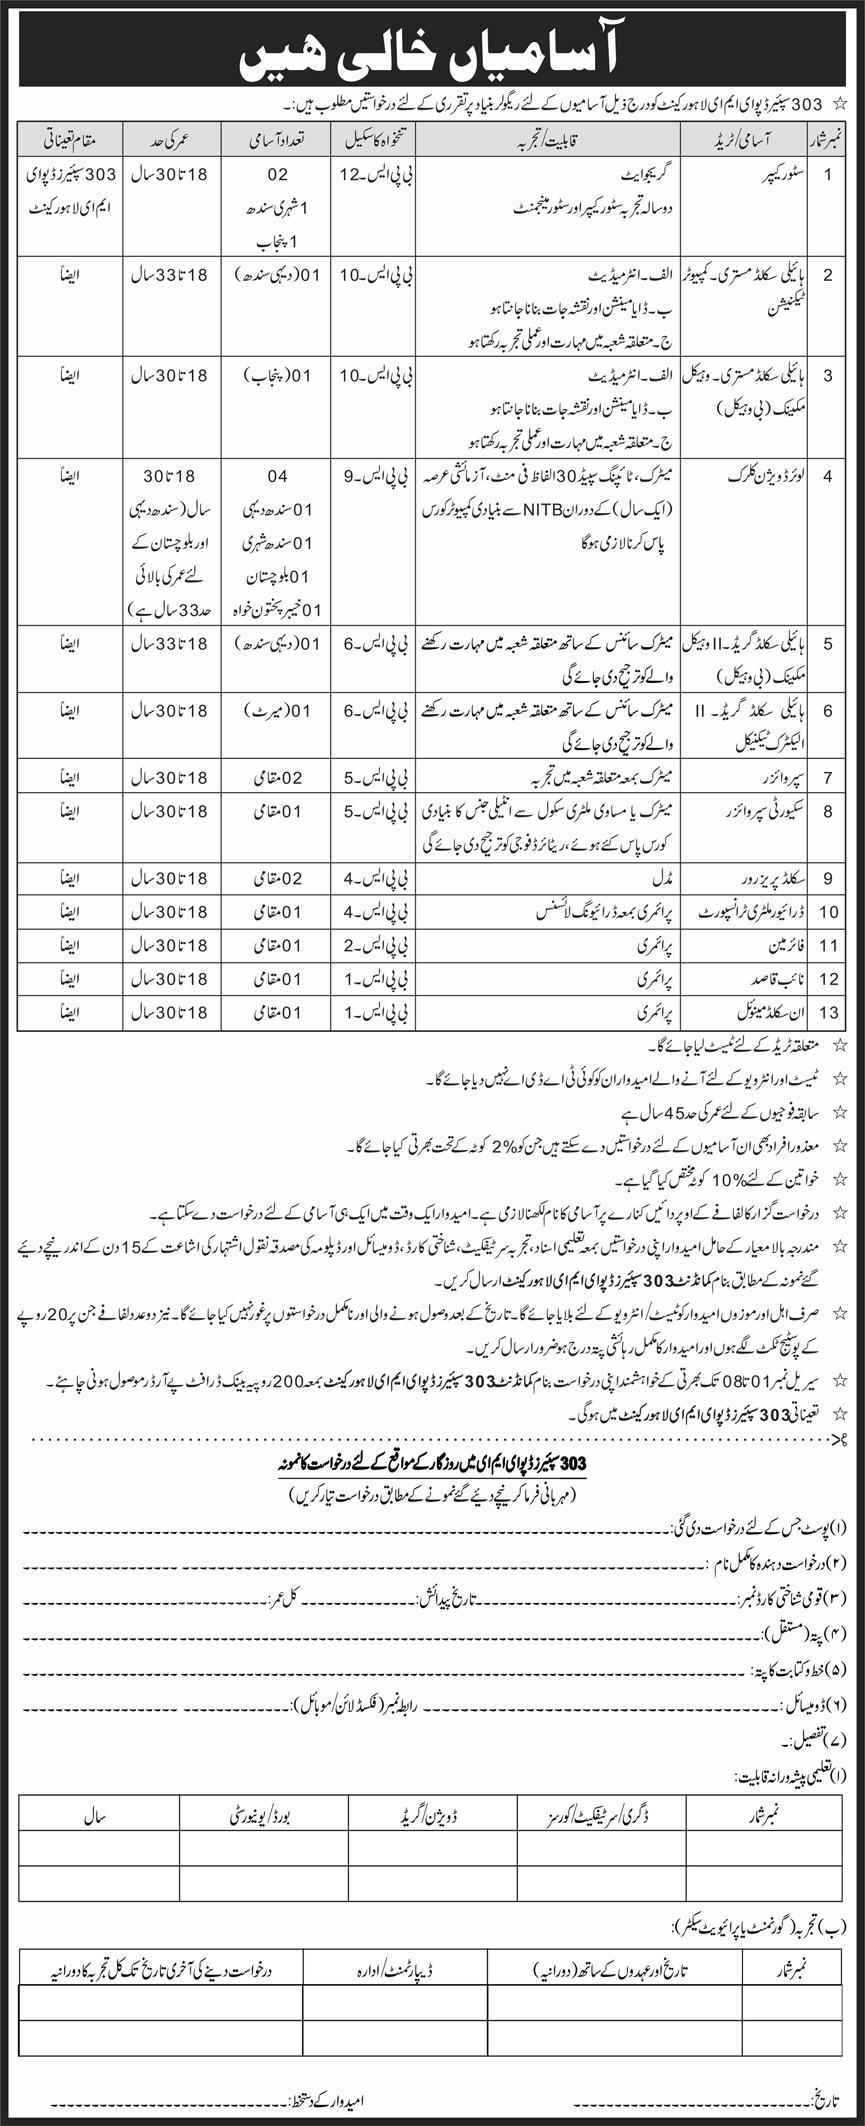 Pakistan Army 303 Spares Depot EME Cantt Jobs 2020 | Multiple Jobs Sindh